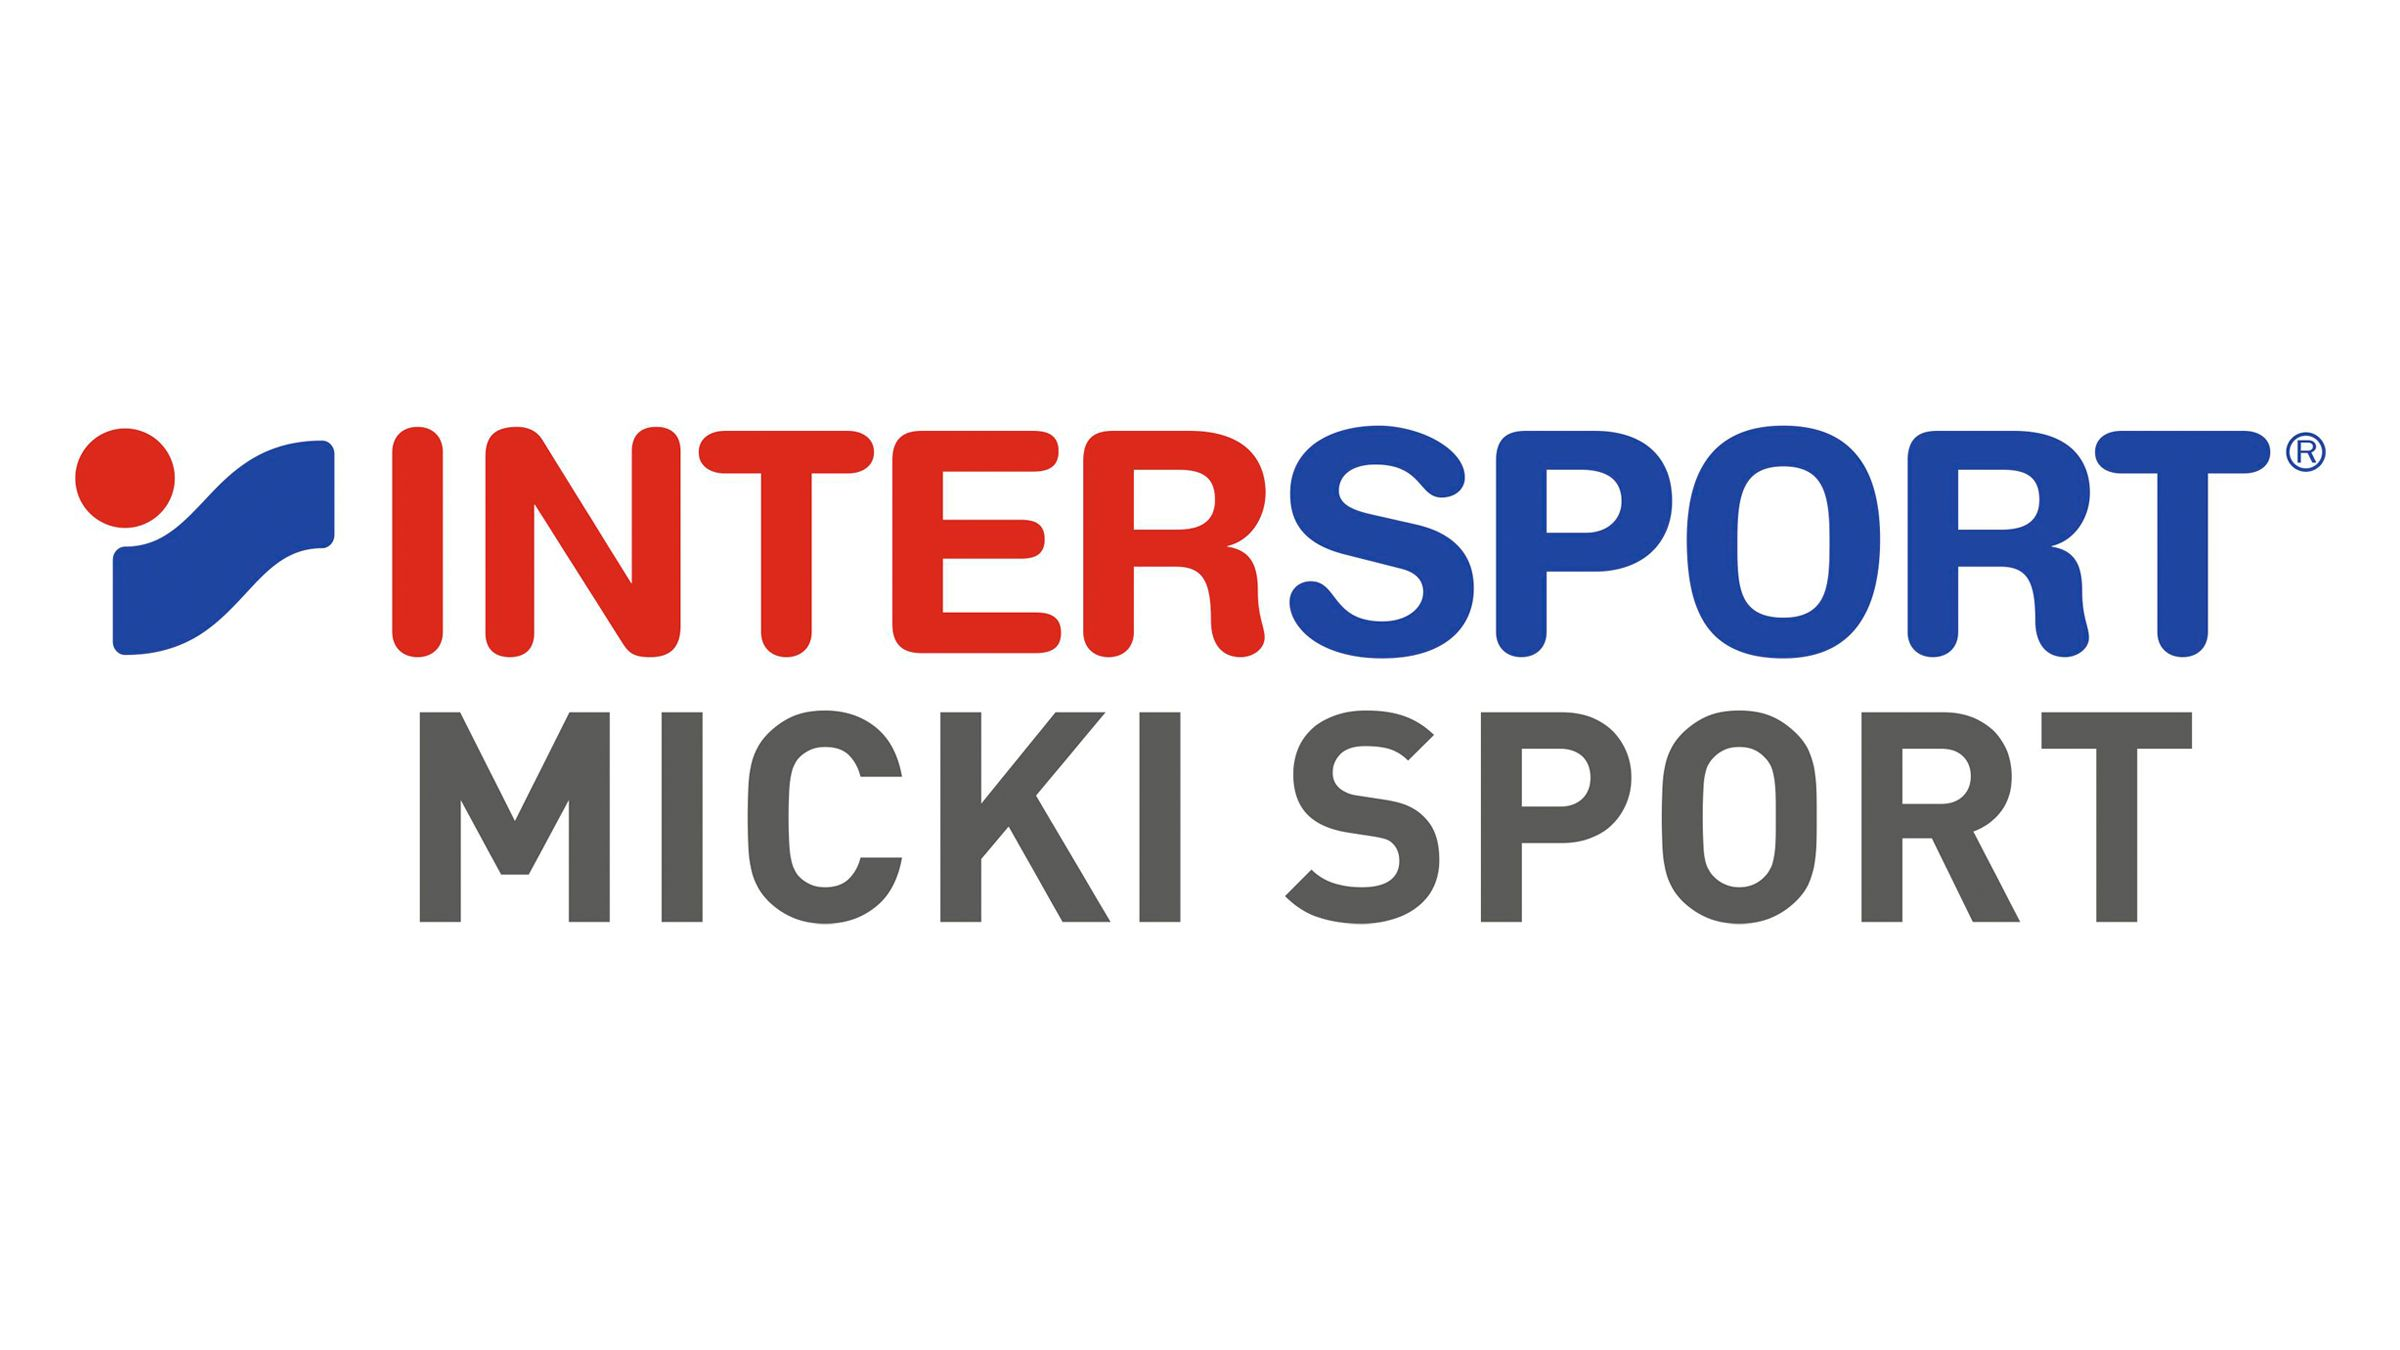 Intersport Mickisport